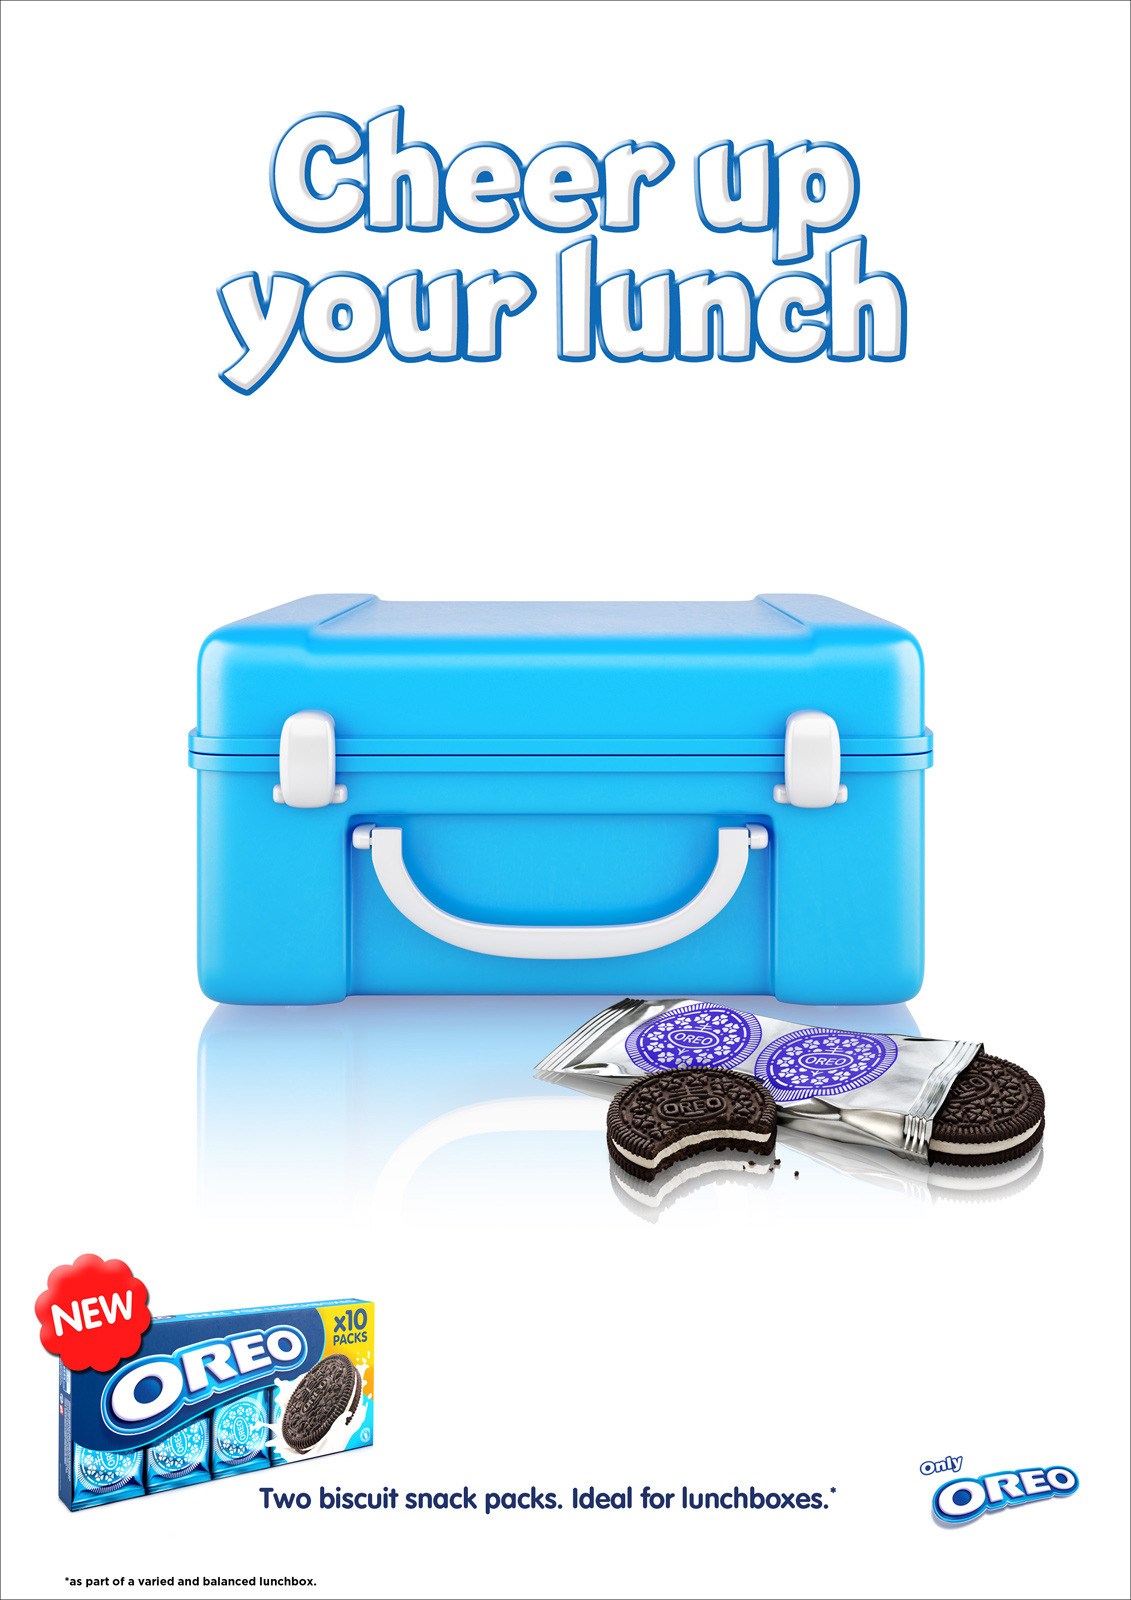 yoannmichaux:  Cheer up your lunchbox, Oreo Ad  who doesn't love Oreos?